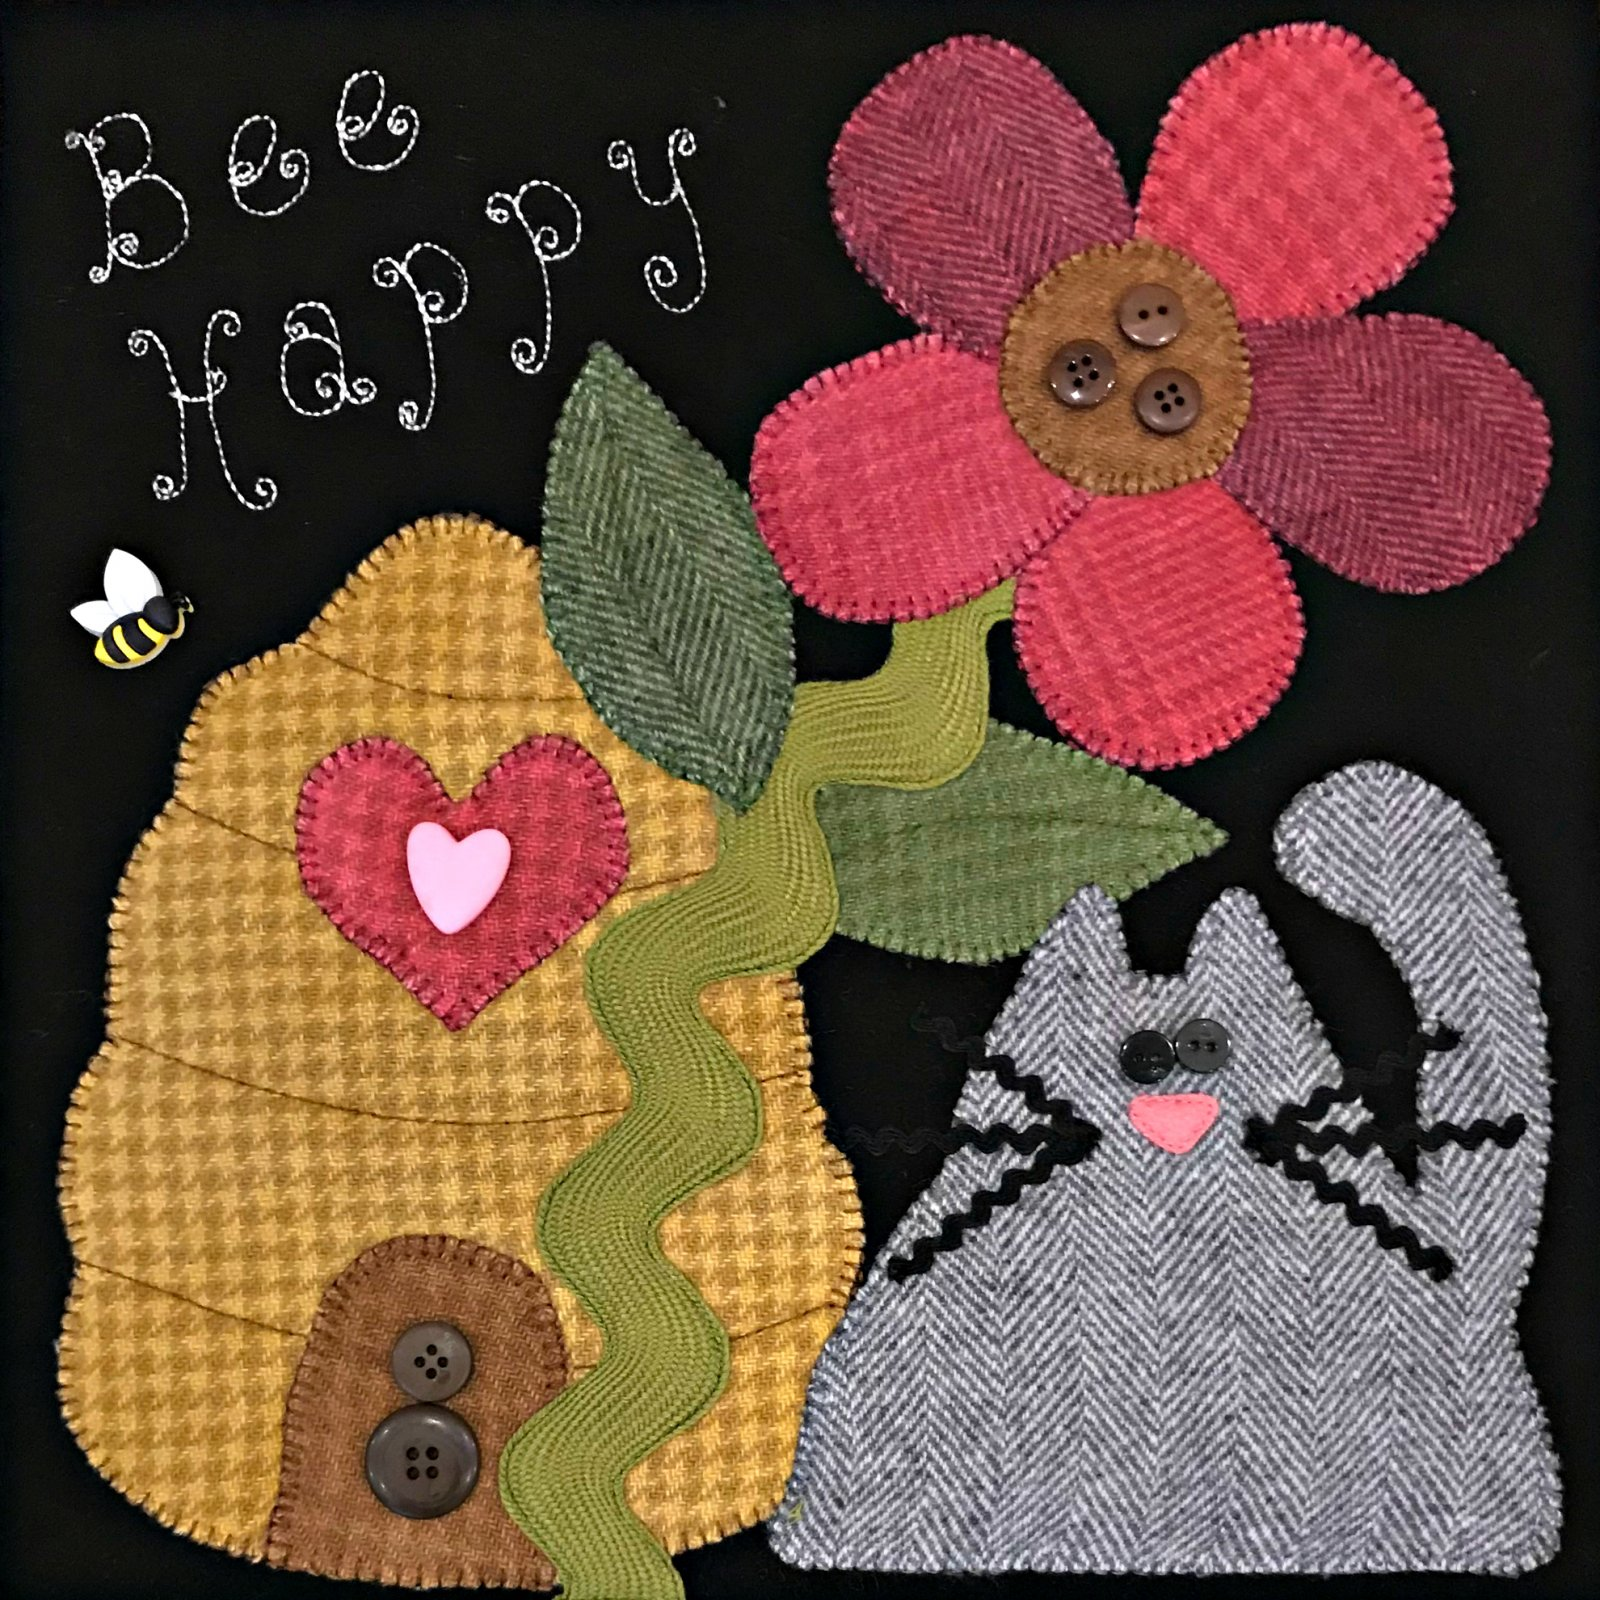 2018 Wooly Block Adventure Pattern and Kit